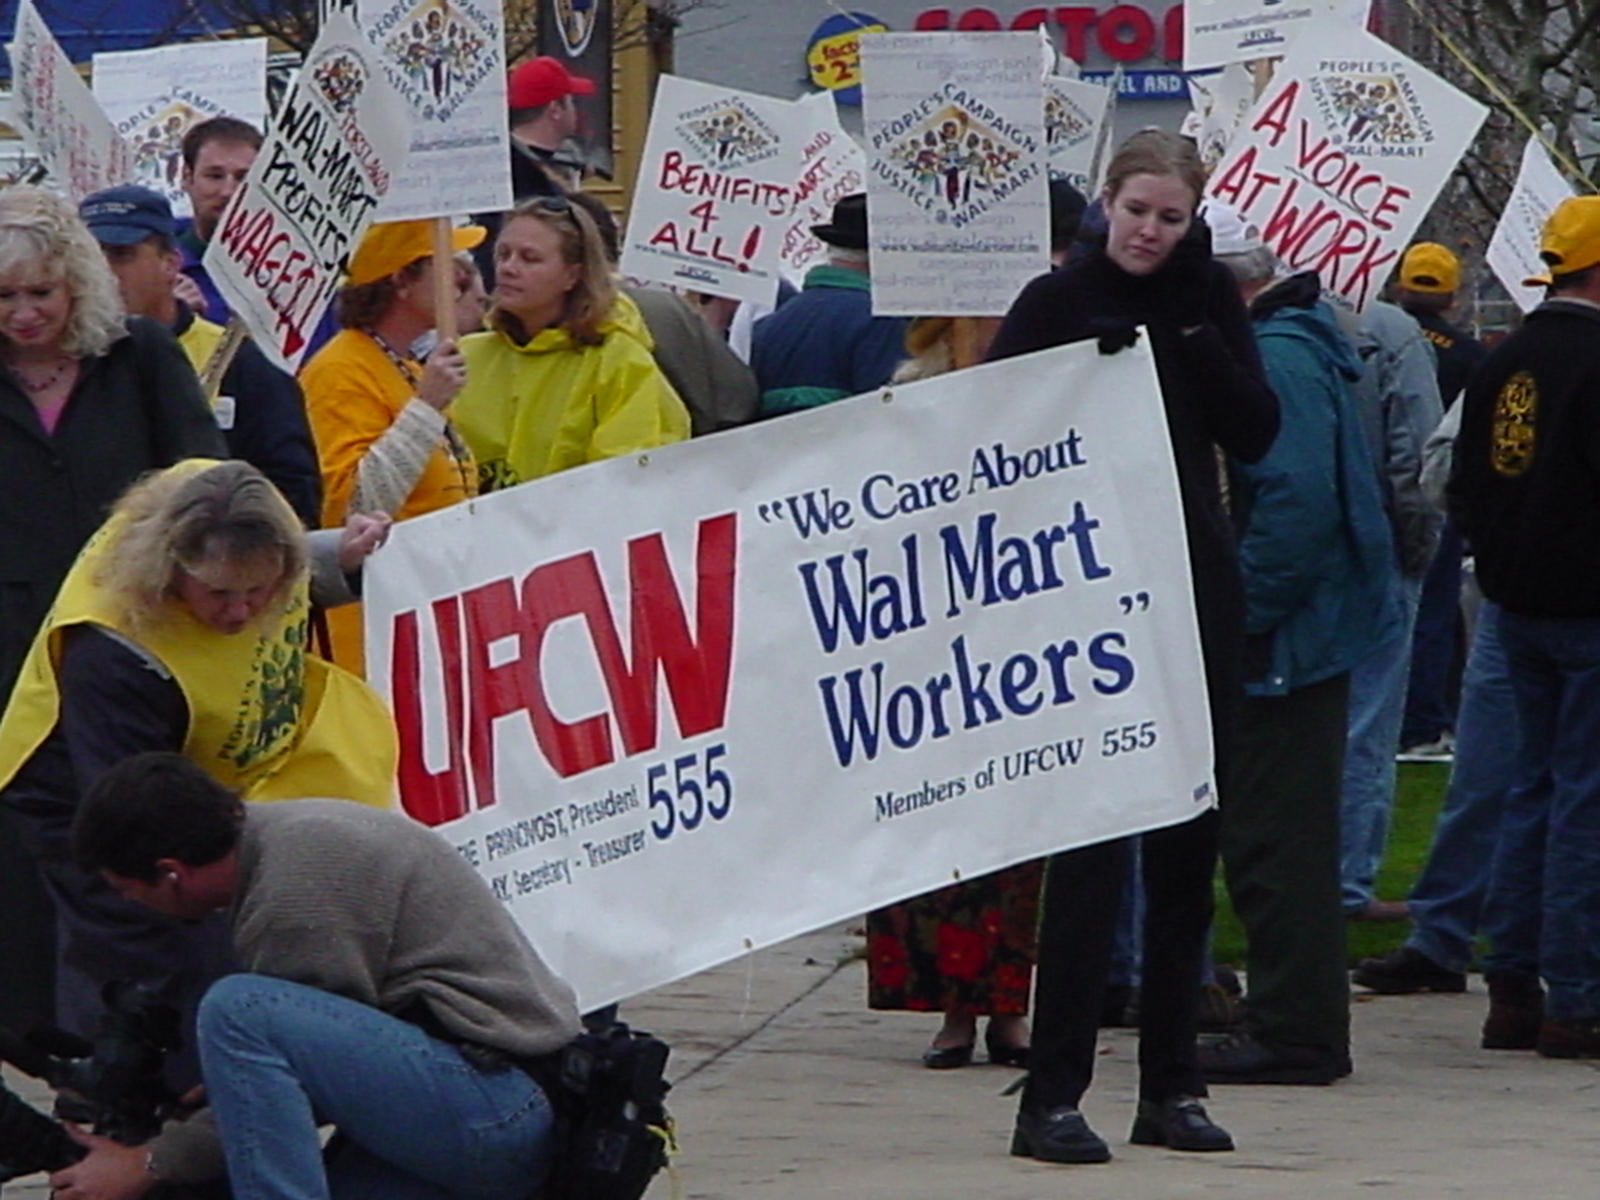 UFCW Hypocrisy On Display (Again): Two Unions Fight Over Unionizing UFCW Workers…